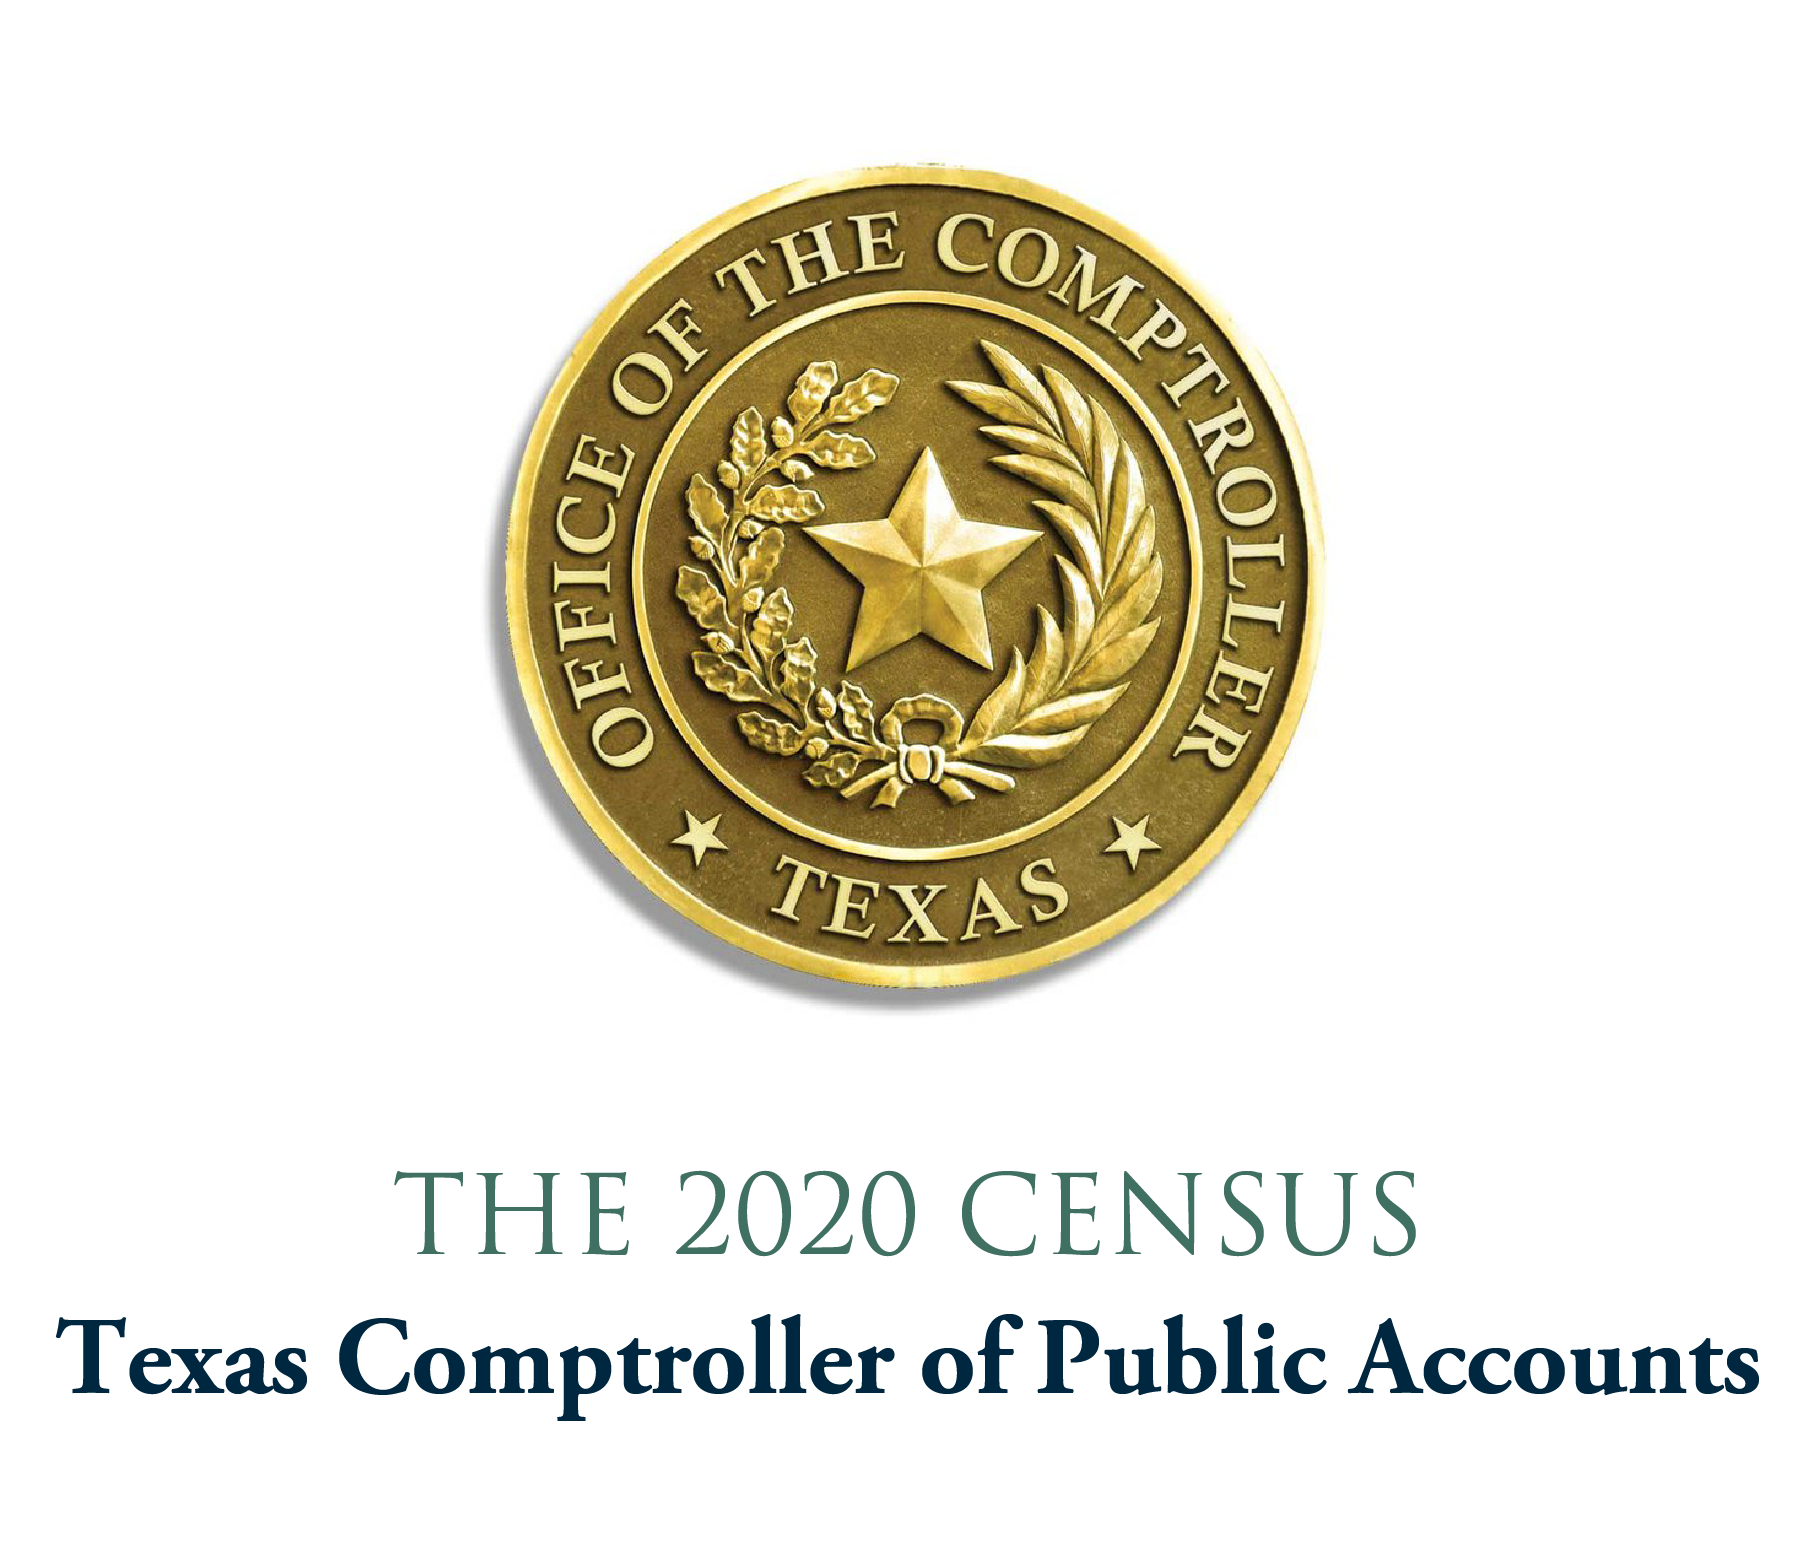 Texas Comptroller of Public Accounts